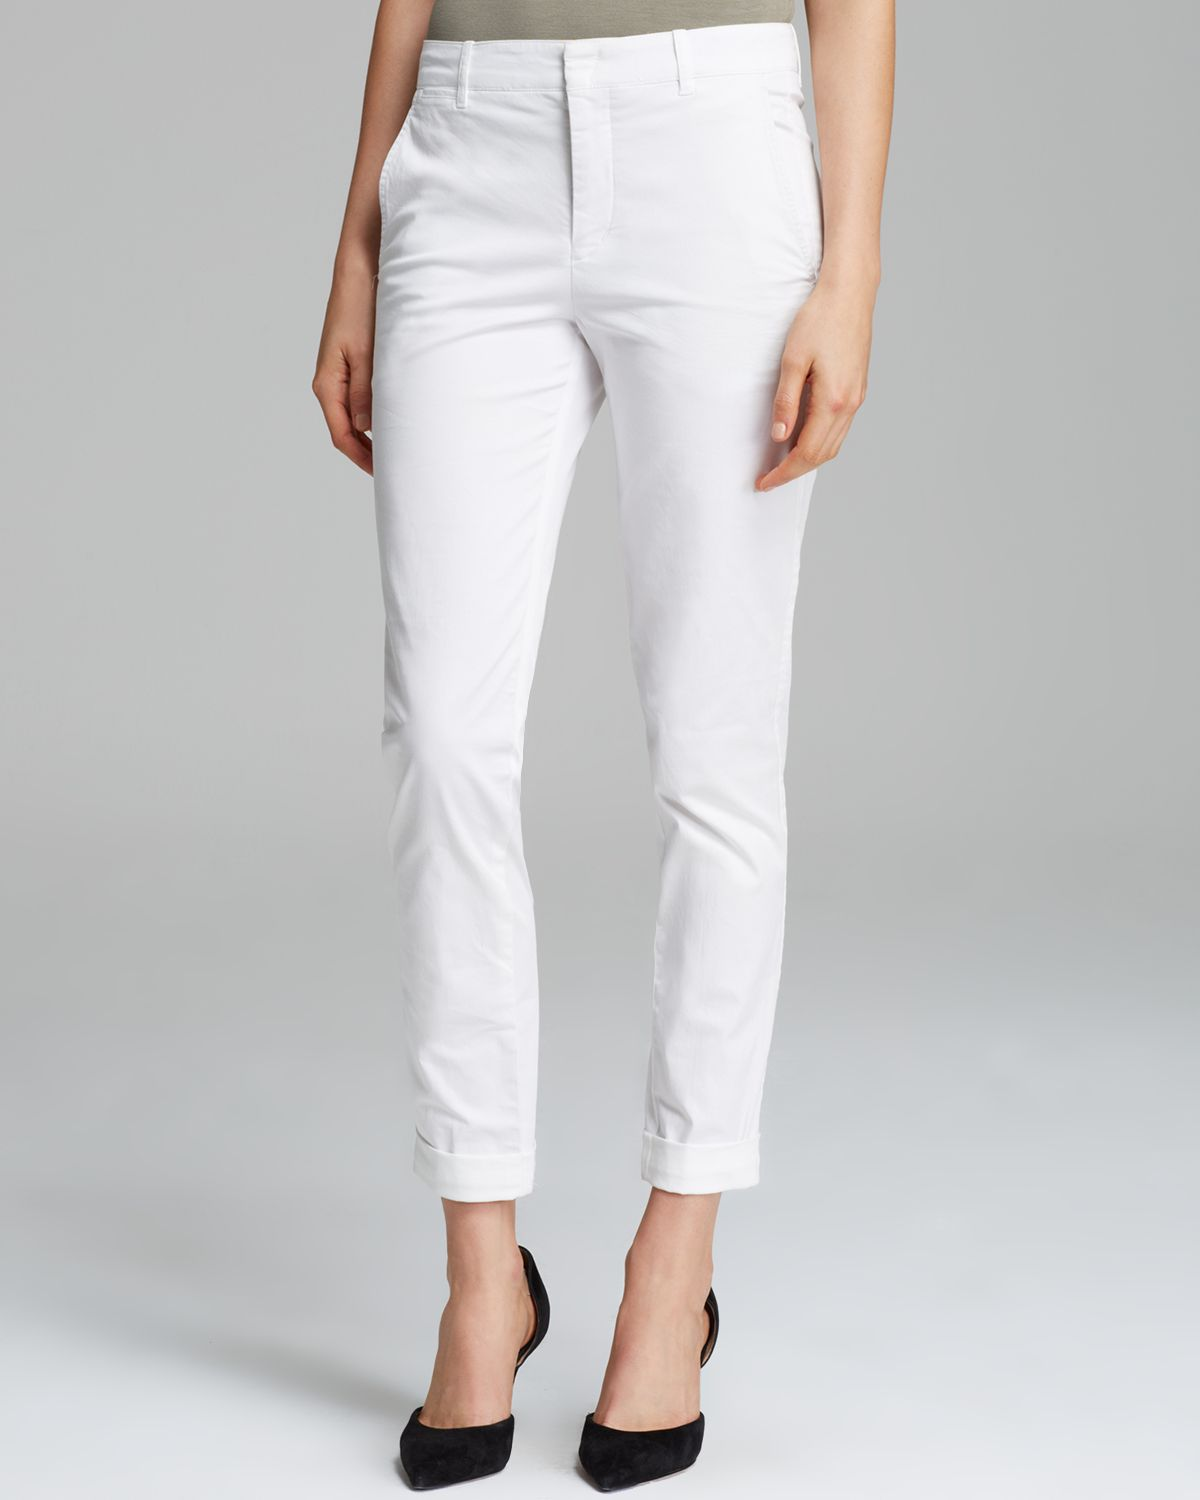 White pants- look fabulous and confident